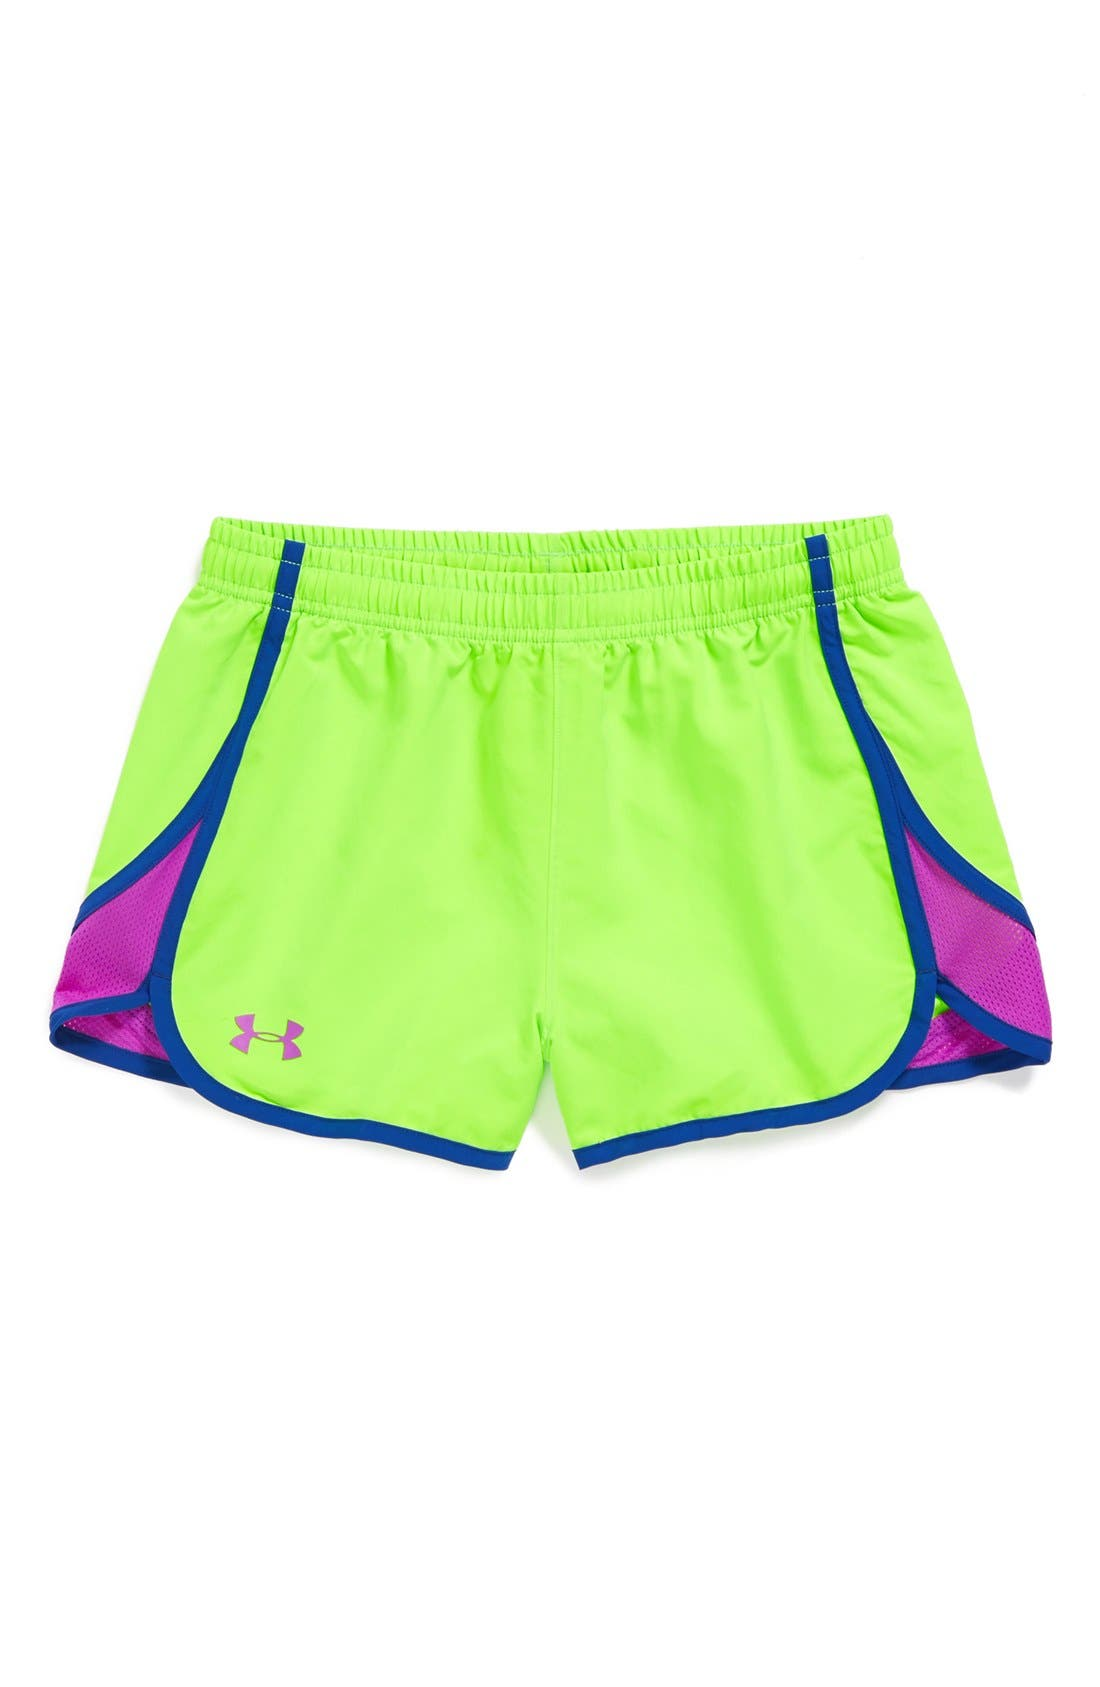 Main Image - Under Armour 'Escape In' Shorts (Big Girls)